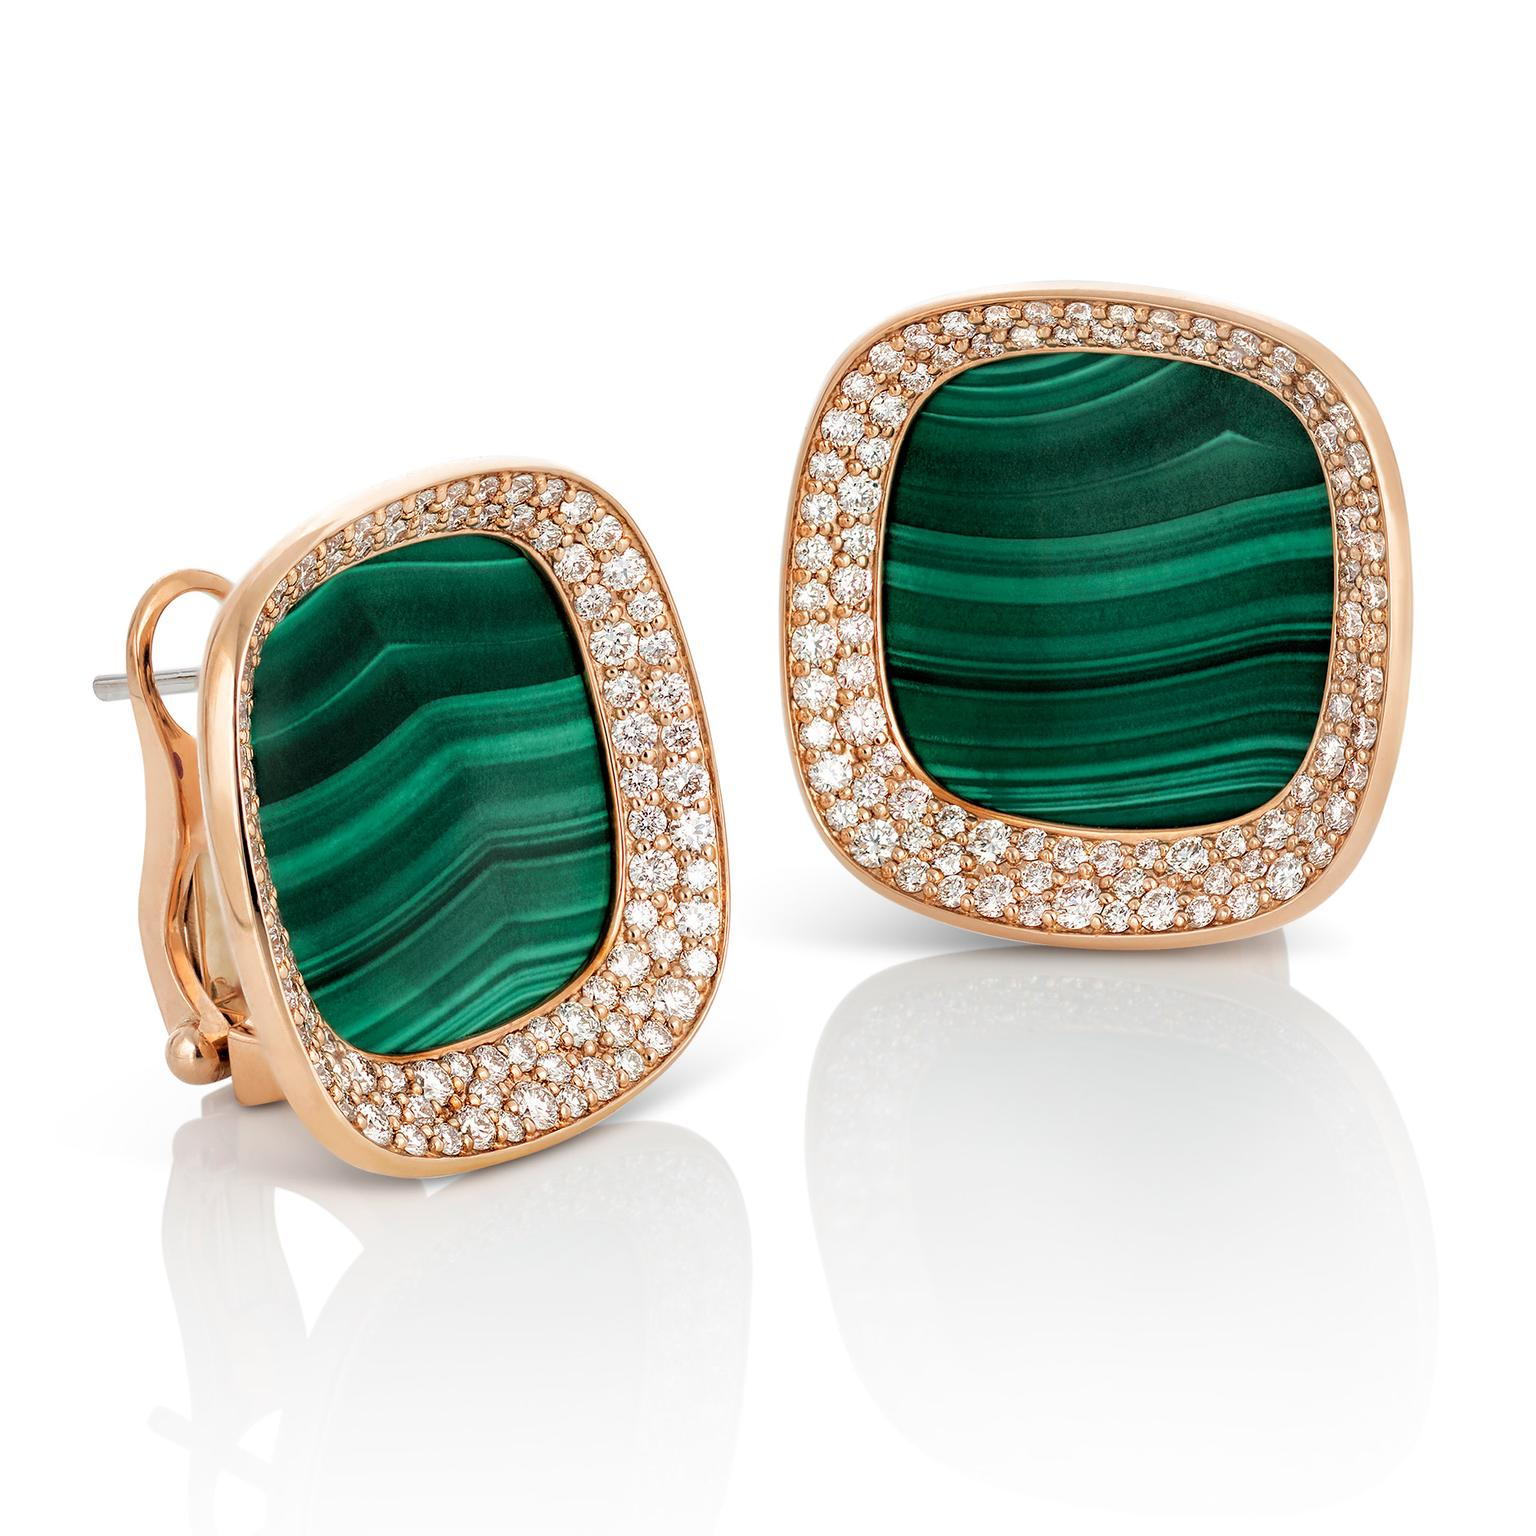 Roberto Coin malachite earrings